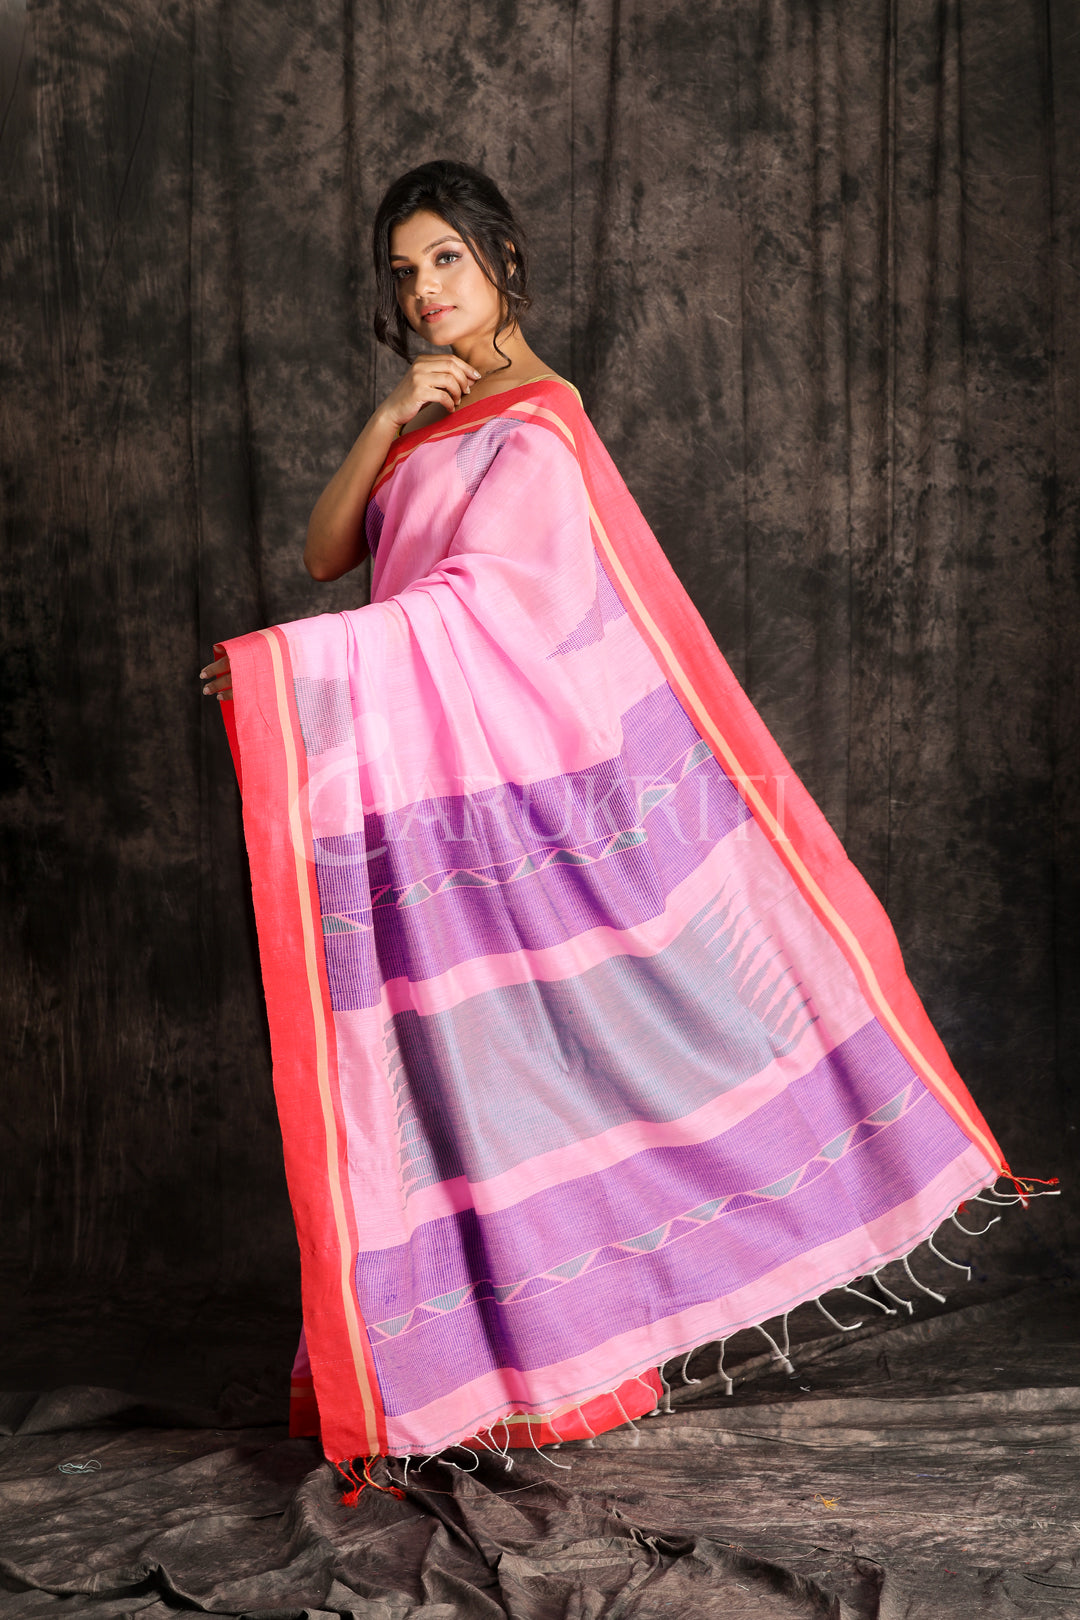 FUCHSIA PINK COTTON SAREE WITH RED BORDER AND WOVEN TEMPLE DESIGN